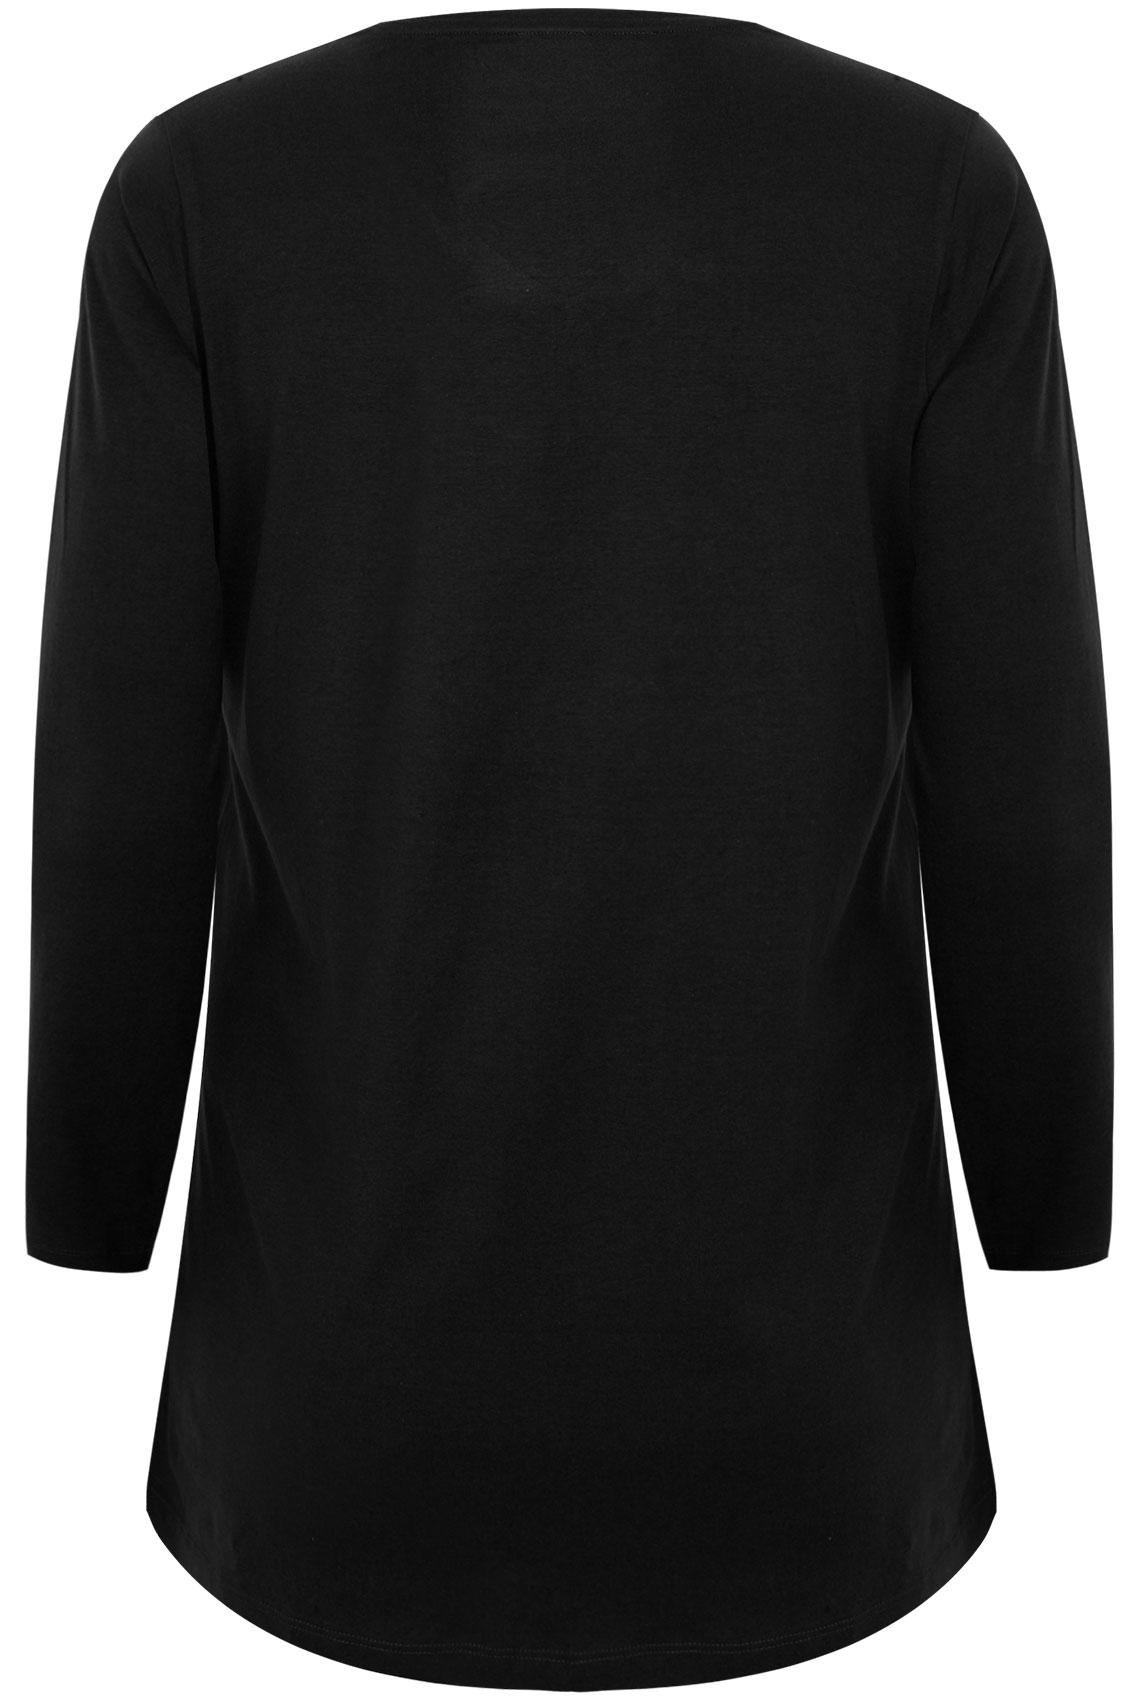 Find great deals on eBay for plain black long sleeve shirt. Shop with confidence.